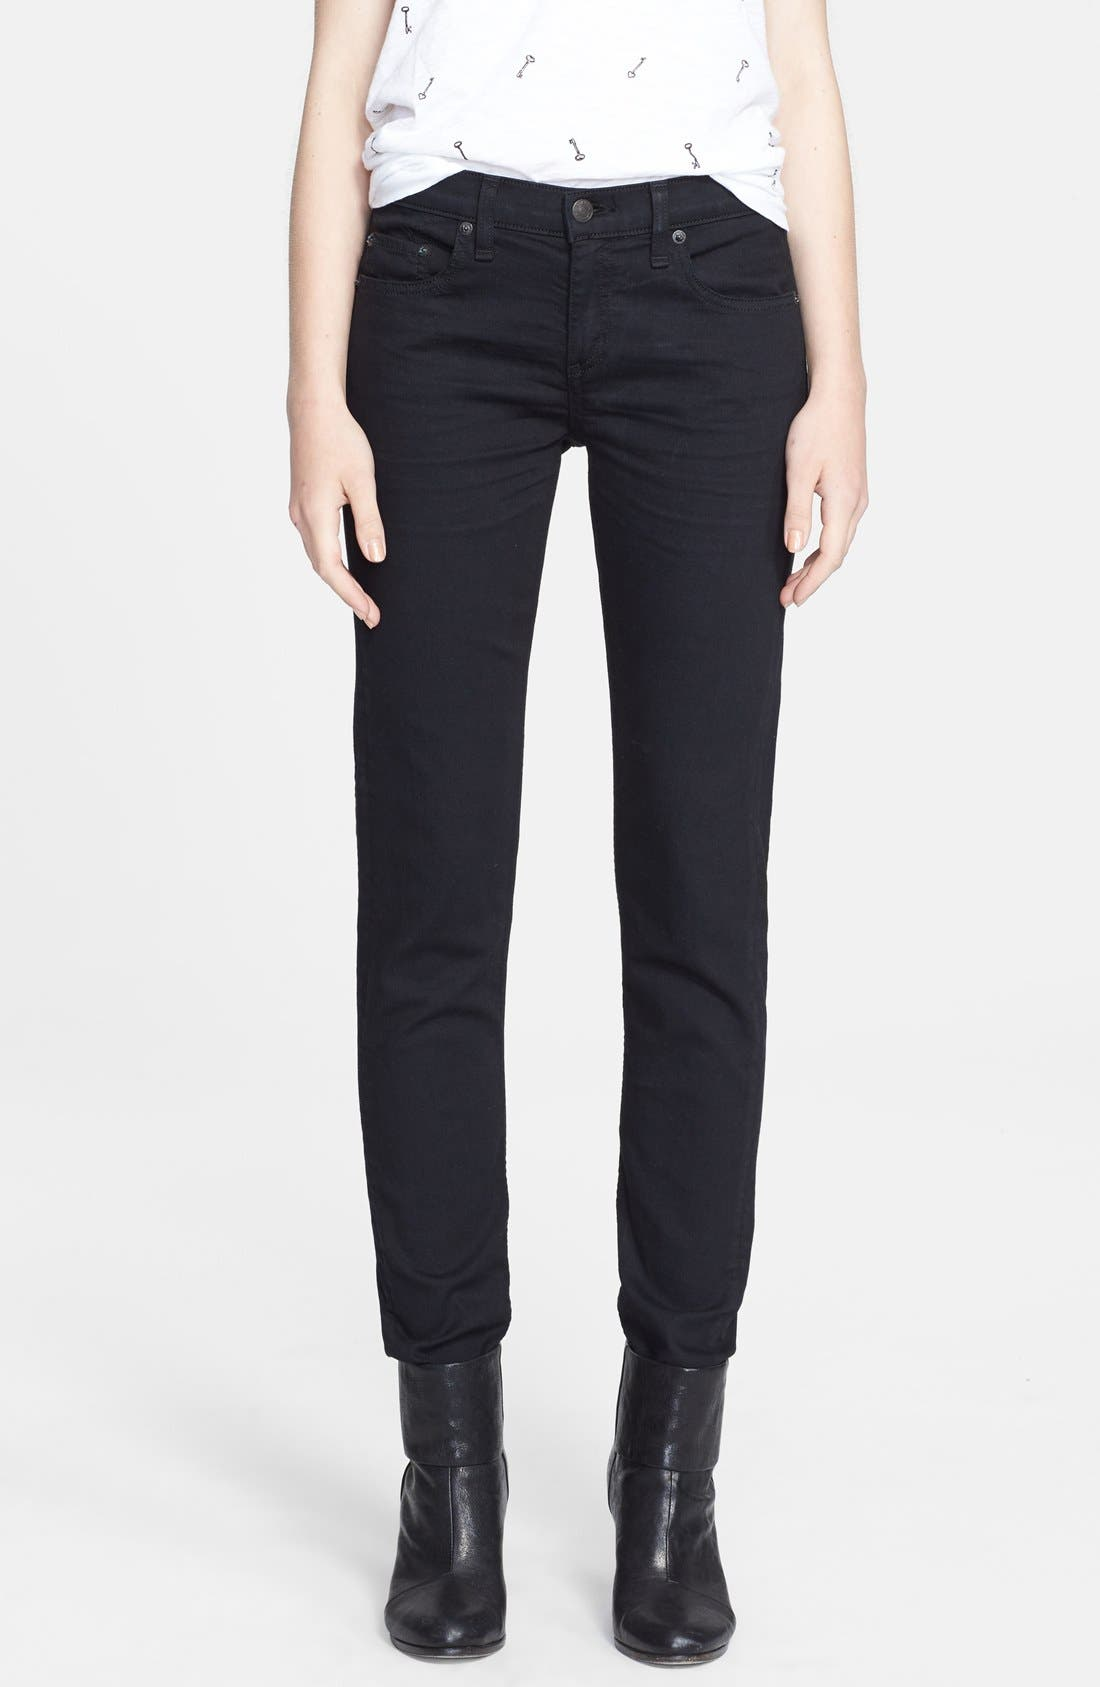 Main Image - rag & bone/JEAN 'The Dre' Skinny Jeans (Aged Black)